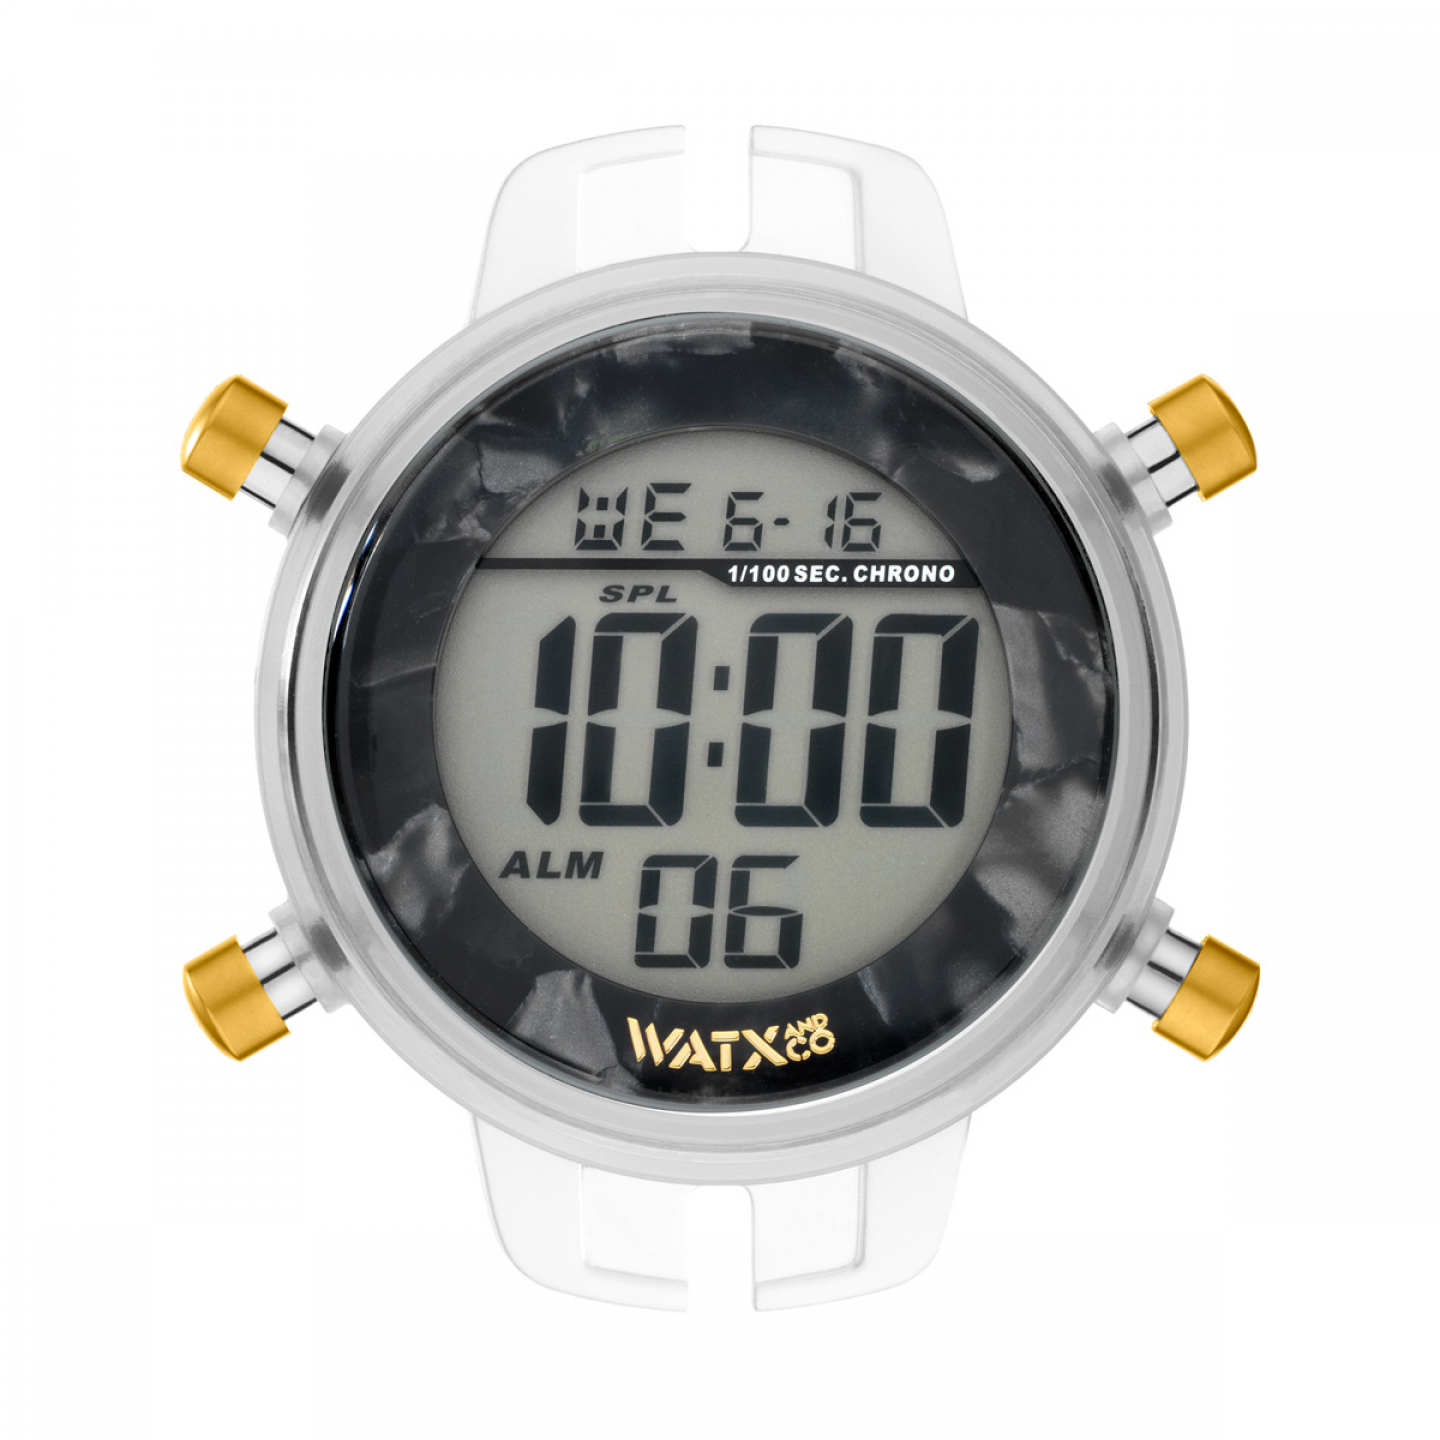 Caixa WATX M Digital Turtle Preto